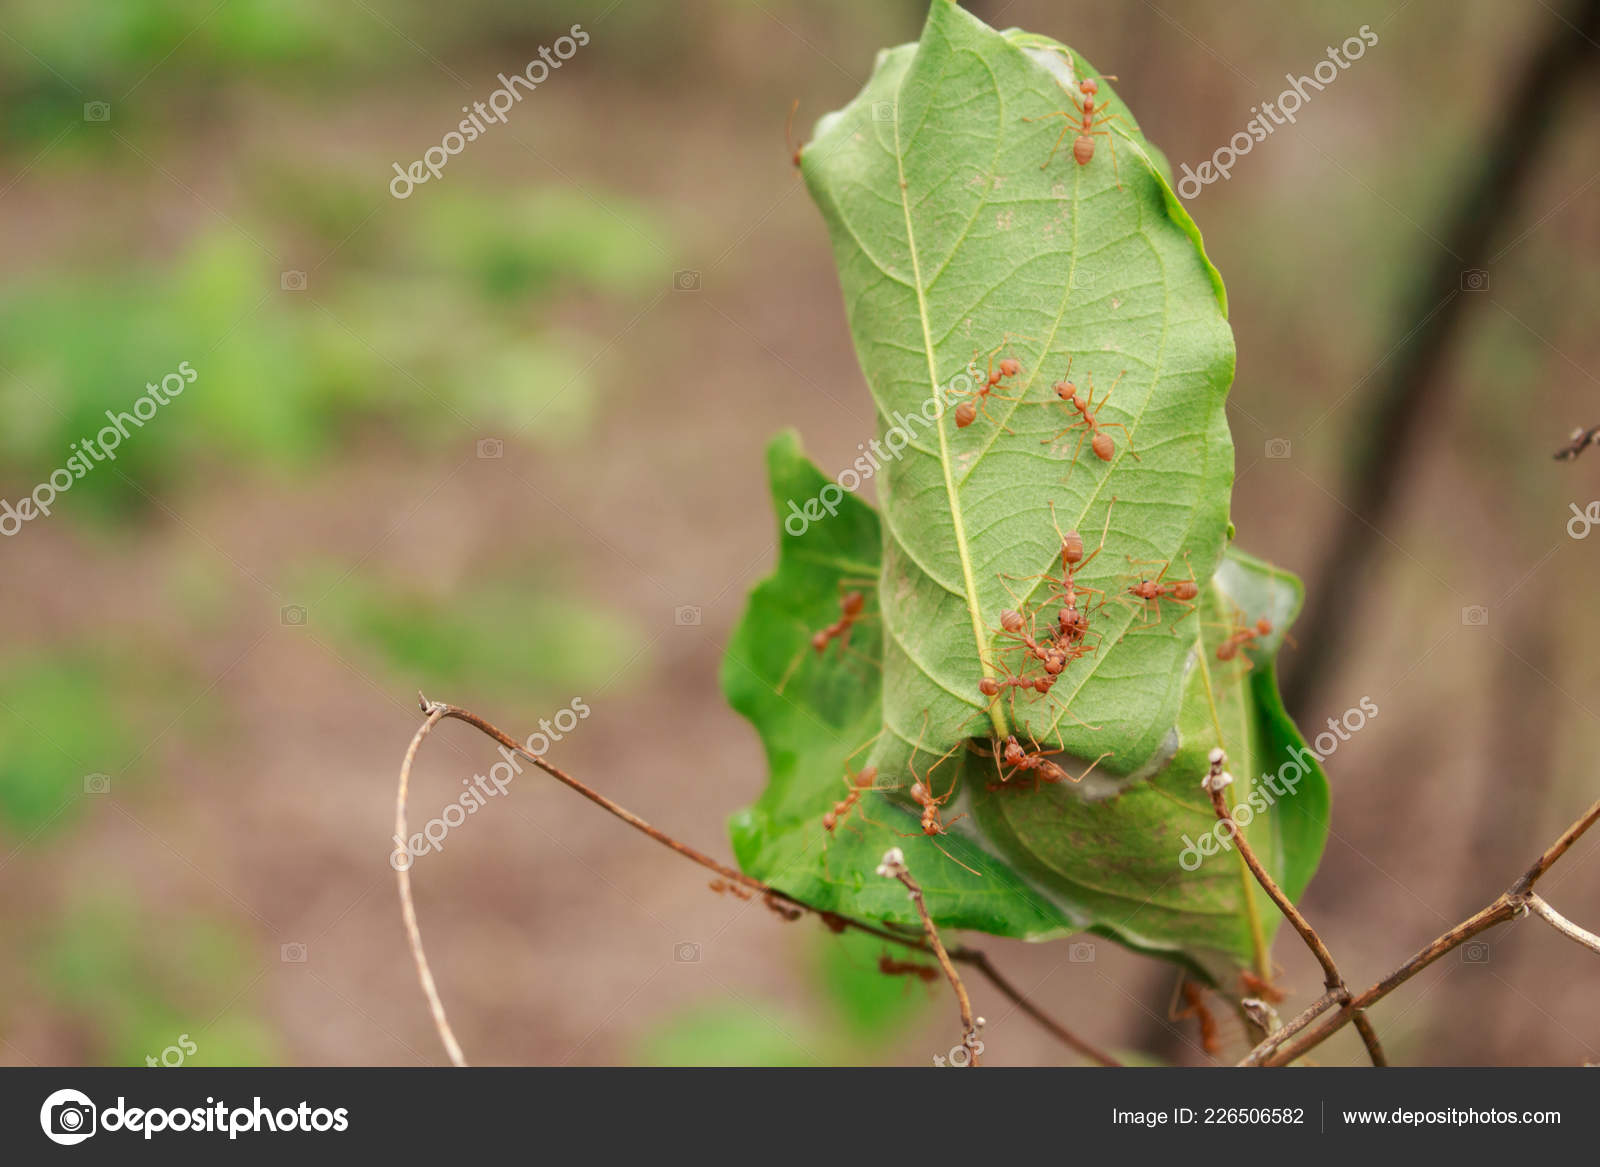 Ants Nest Teamwork Working Insect Animal Forest Stock Photo